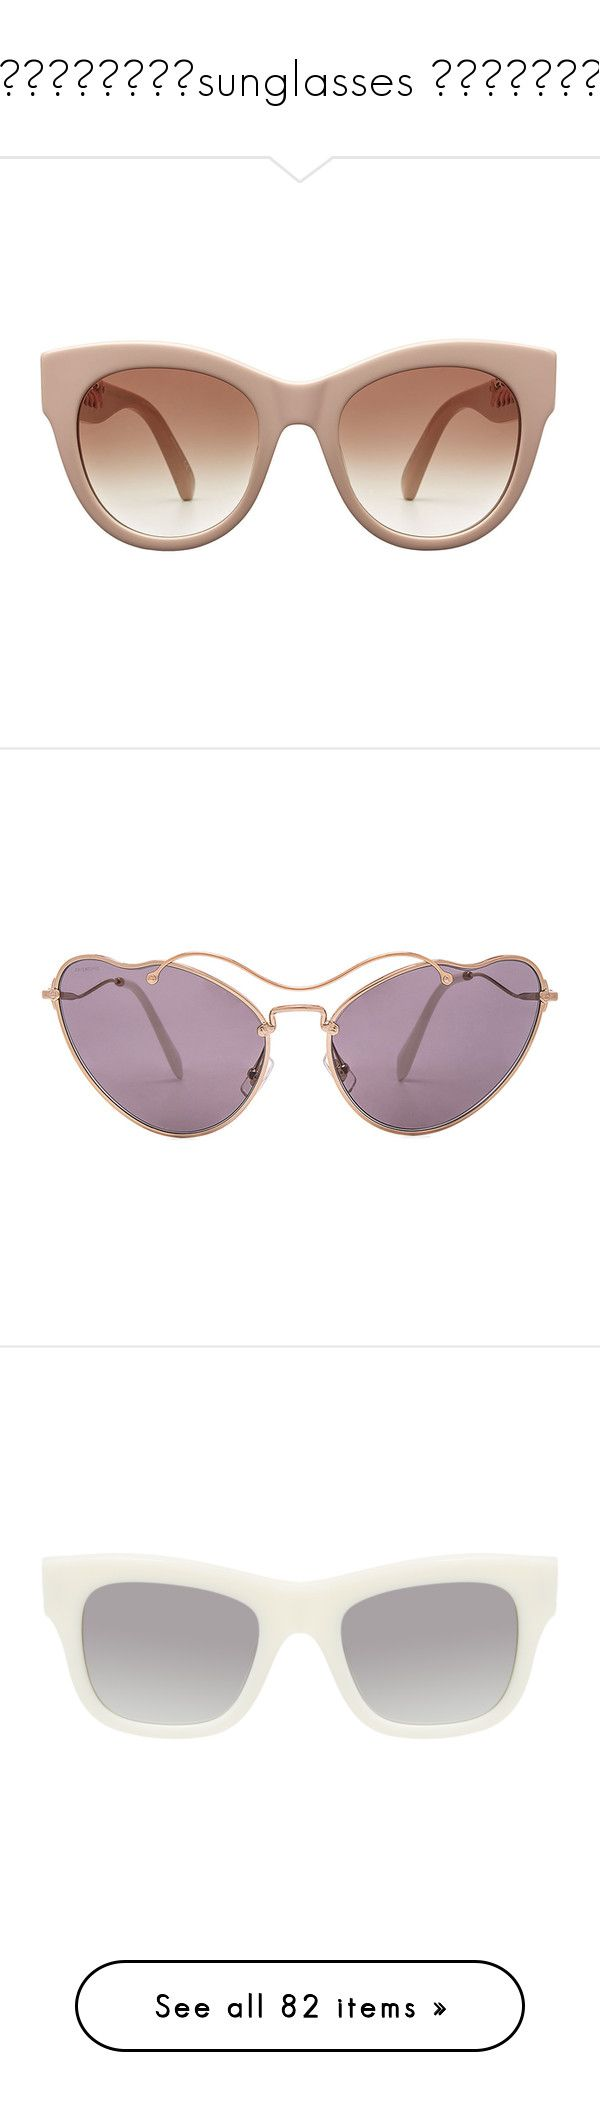 😎🤓😎🤓😎🤓😎🤓sunglasses 😎🤓😎🤓😎🤓😎 by georginalan on Polyvore featuring polyvore, women's fashion, accessories, eyewear, sunglasses, glasses, sunnies, pink, round glasses, rounded sunglasses, stella mccartney glasses, stella mccartney eyewear, rounded glasses, lens glasses, cat eye sunnies, miu miu glasses, metal frame sunglasses, miu miu sunglasses, white, stella mccartney, chain sunglasses, white glasses, uv protection glasses, acetate sunglasses, black, celine sunnies, plastic…